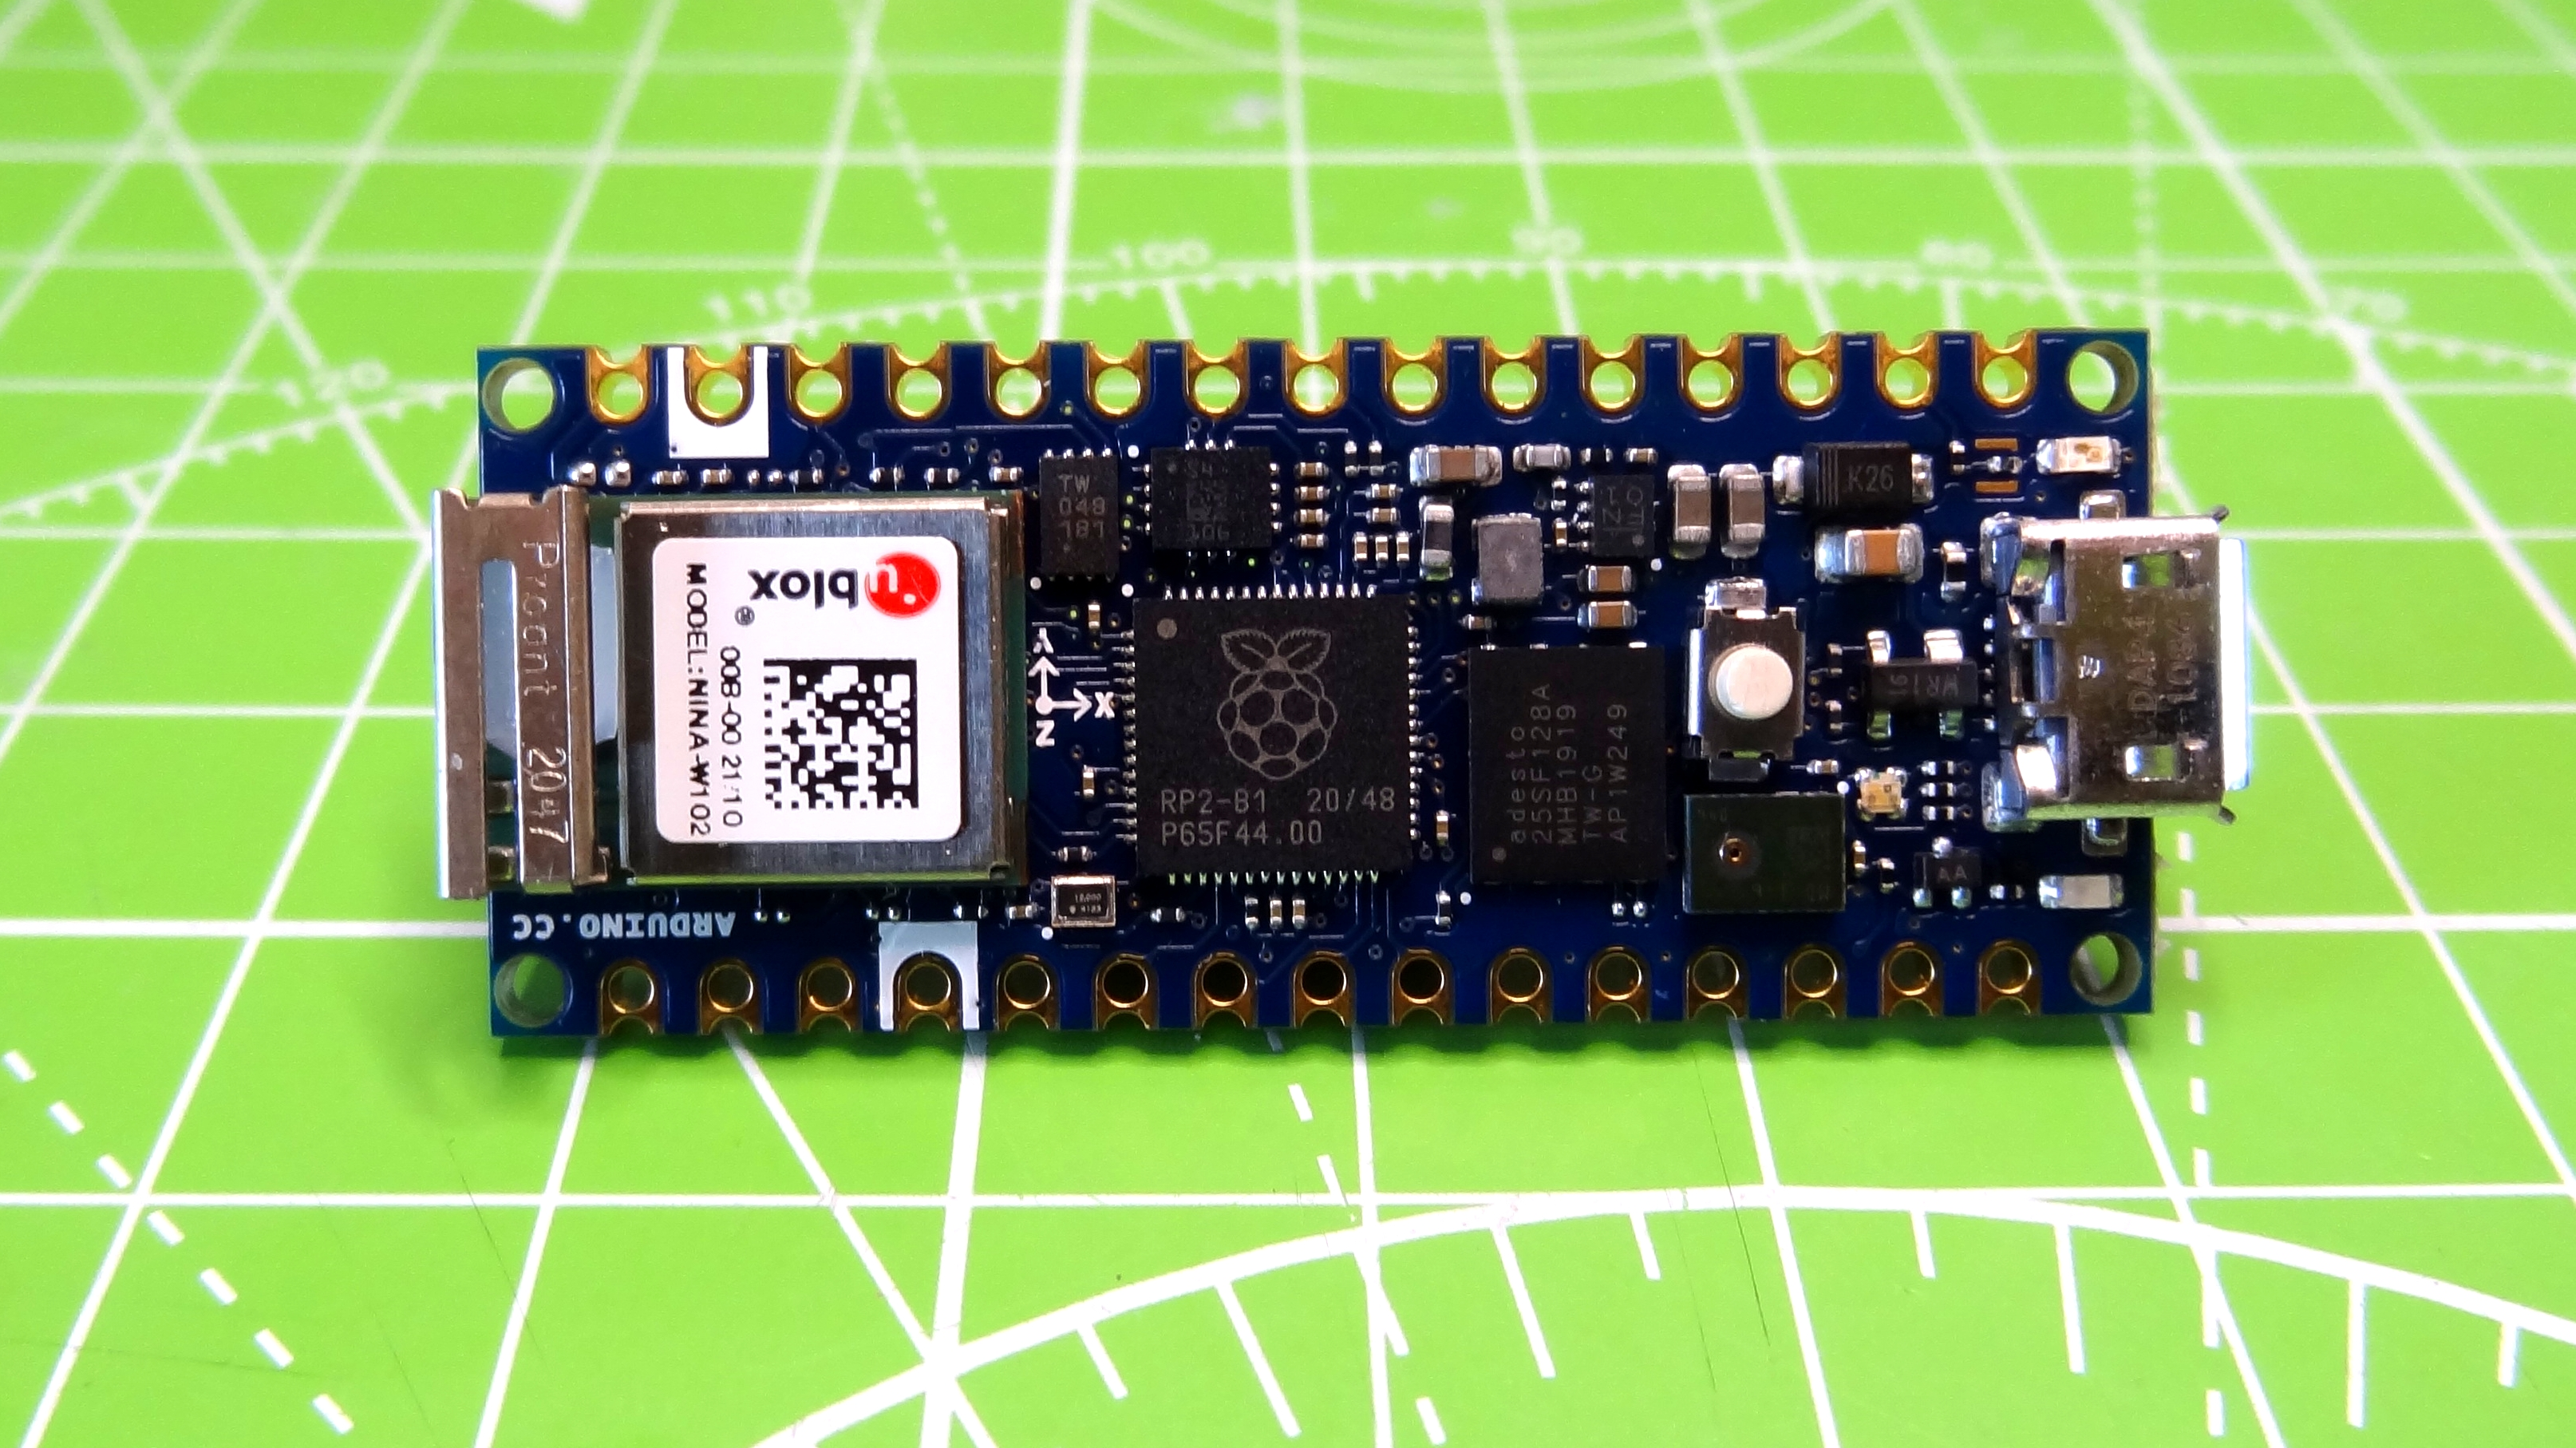 Arduino Nano RP2040 Connect Review: Built-in Wi-Fi and BLE